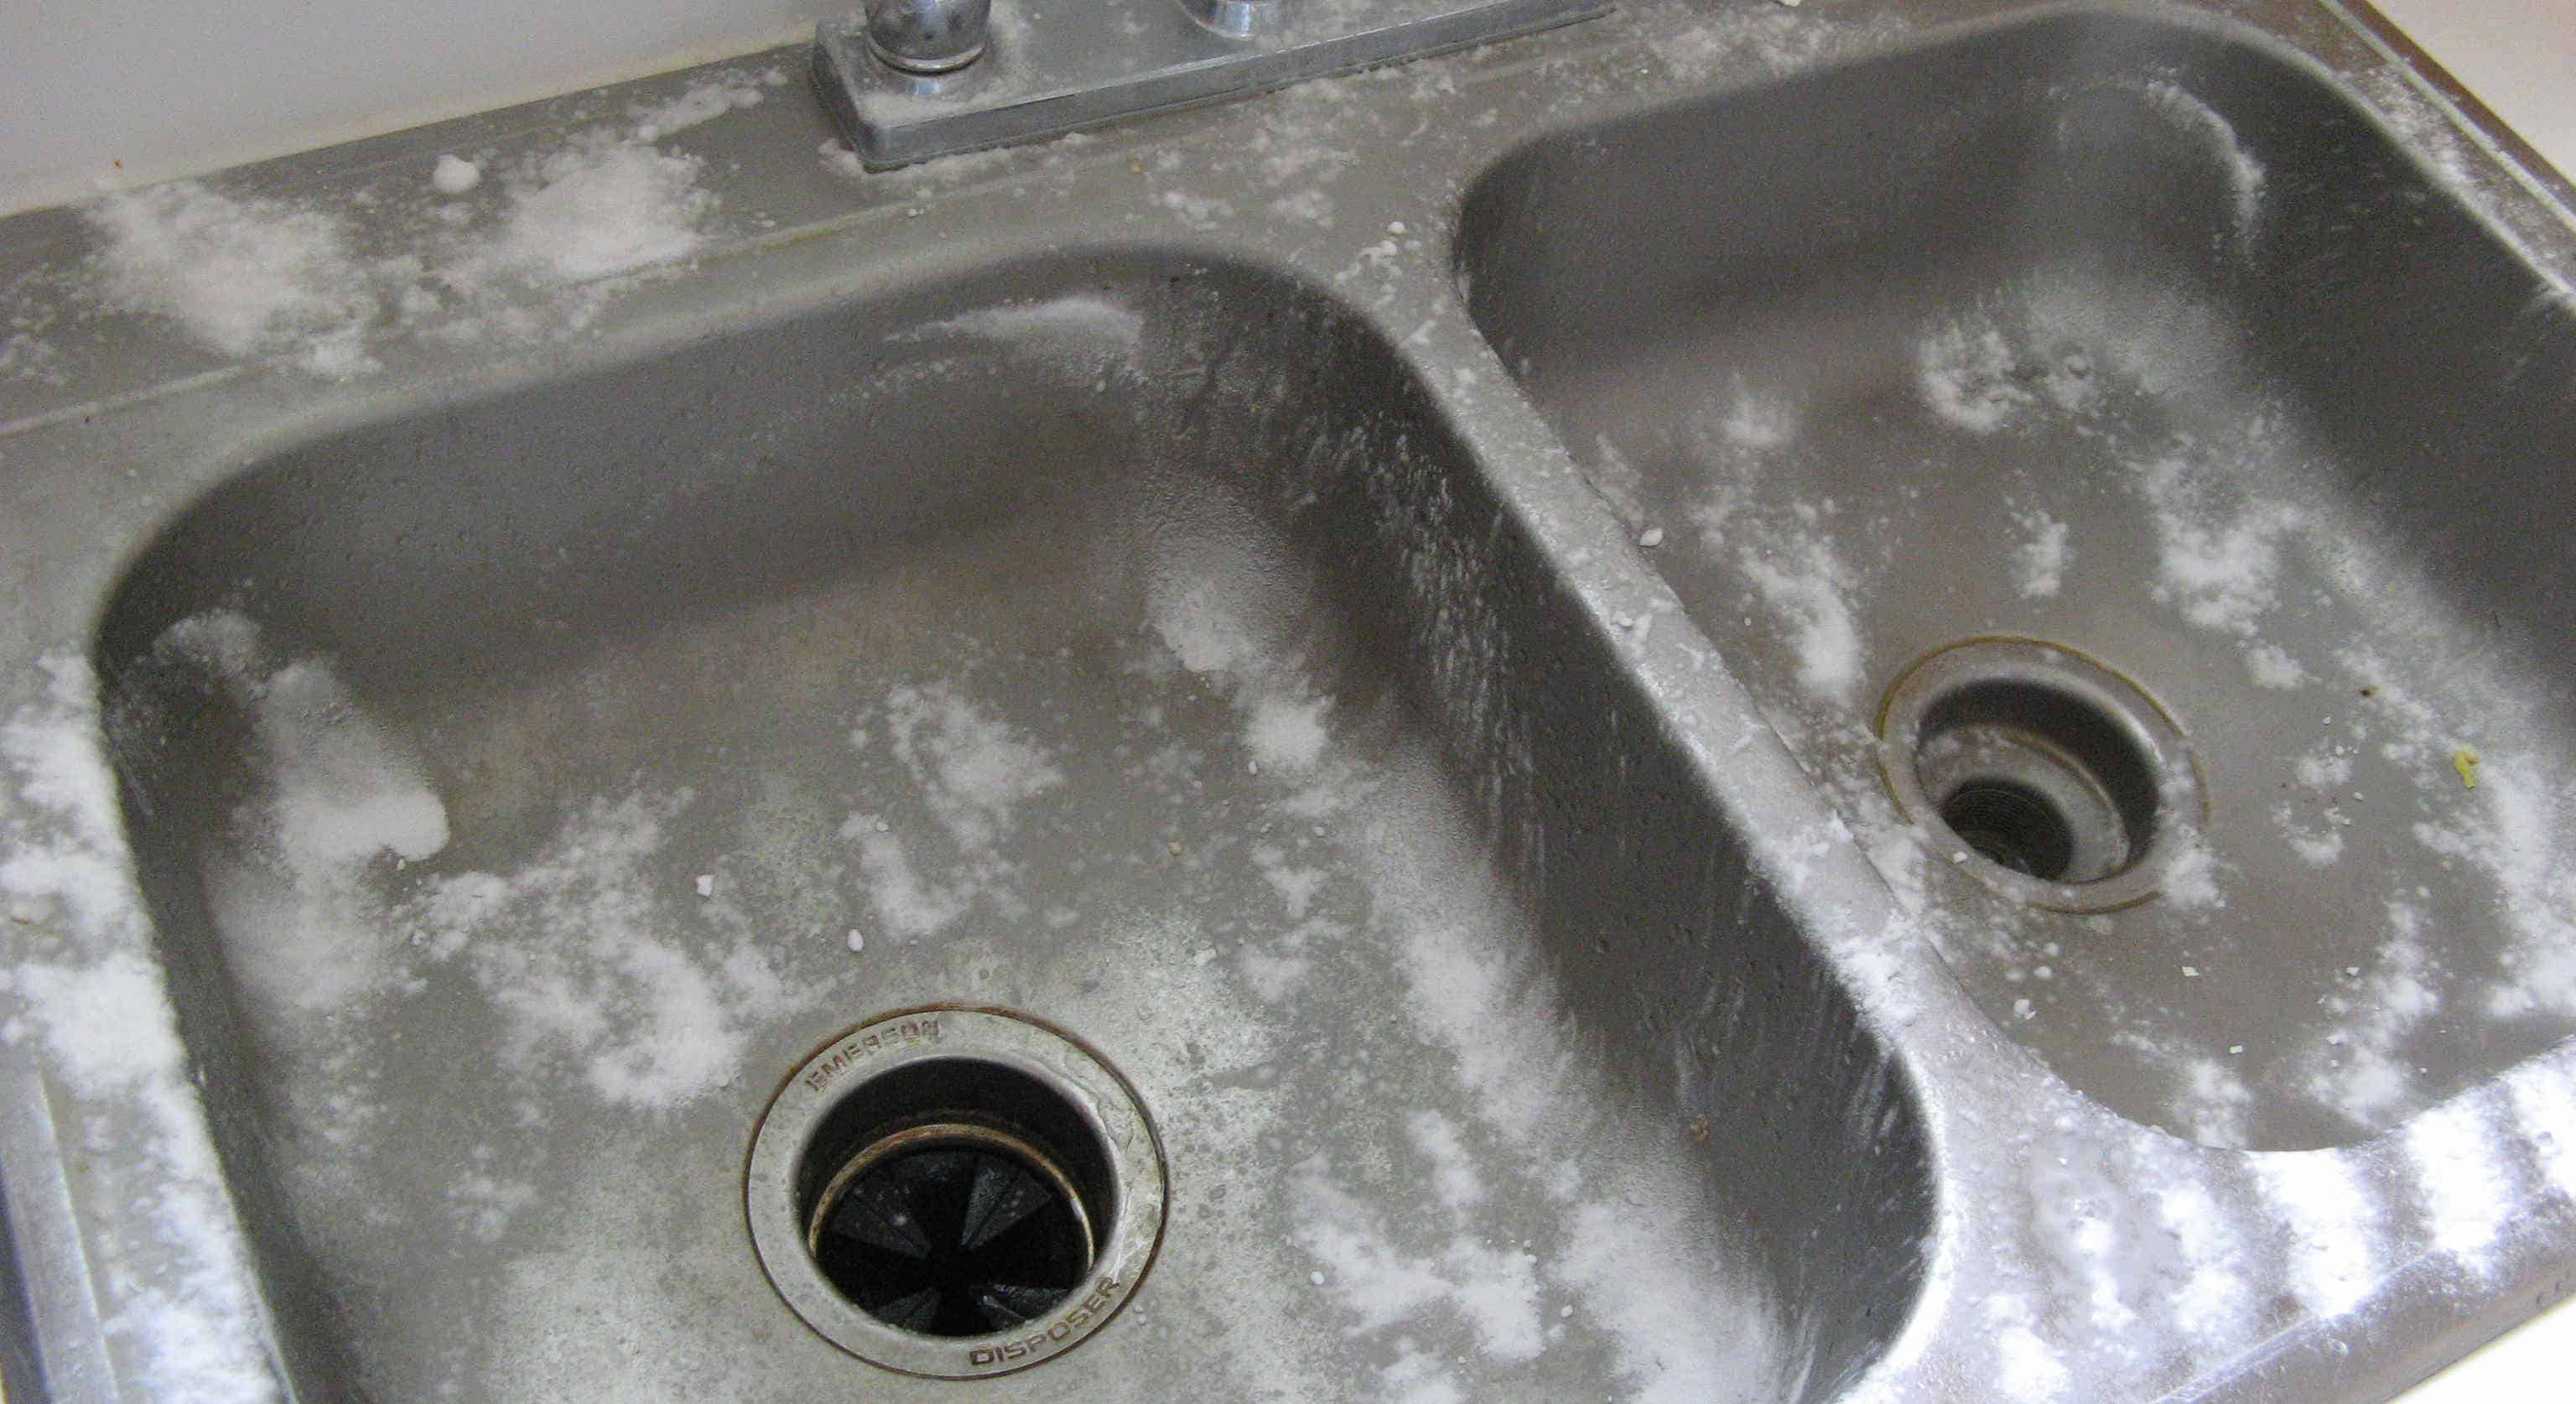 Wash Sink With vinegar and baking soda